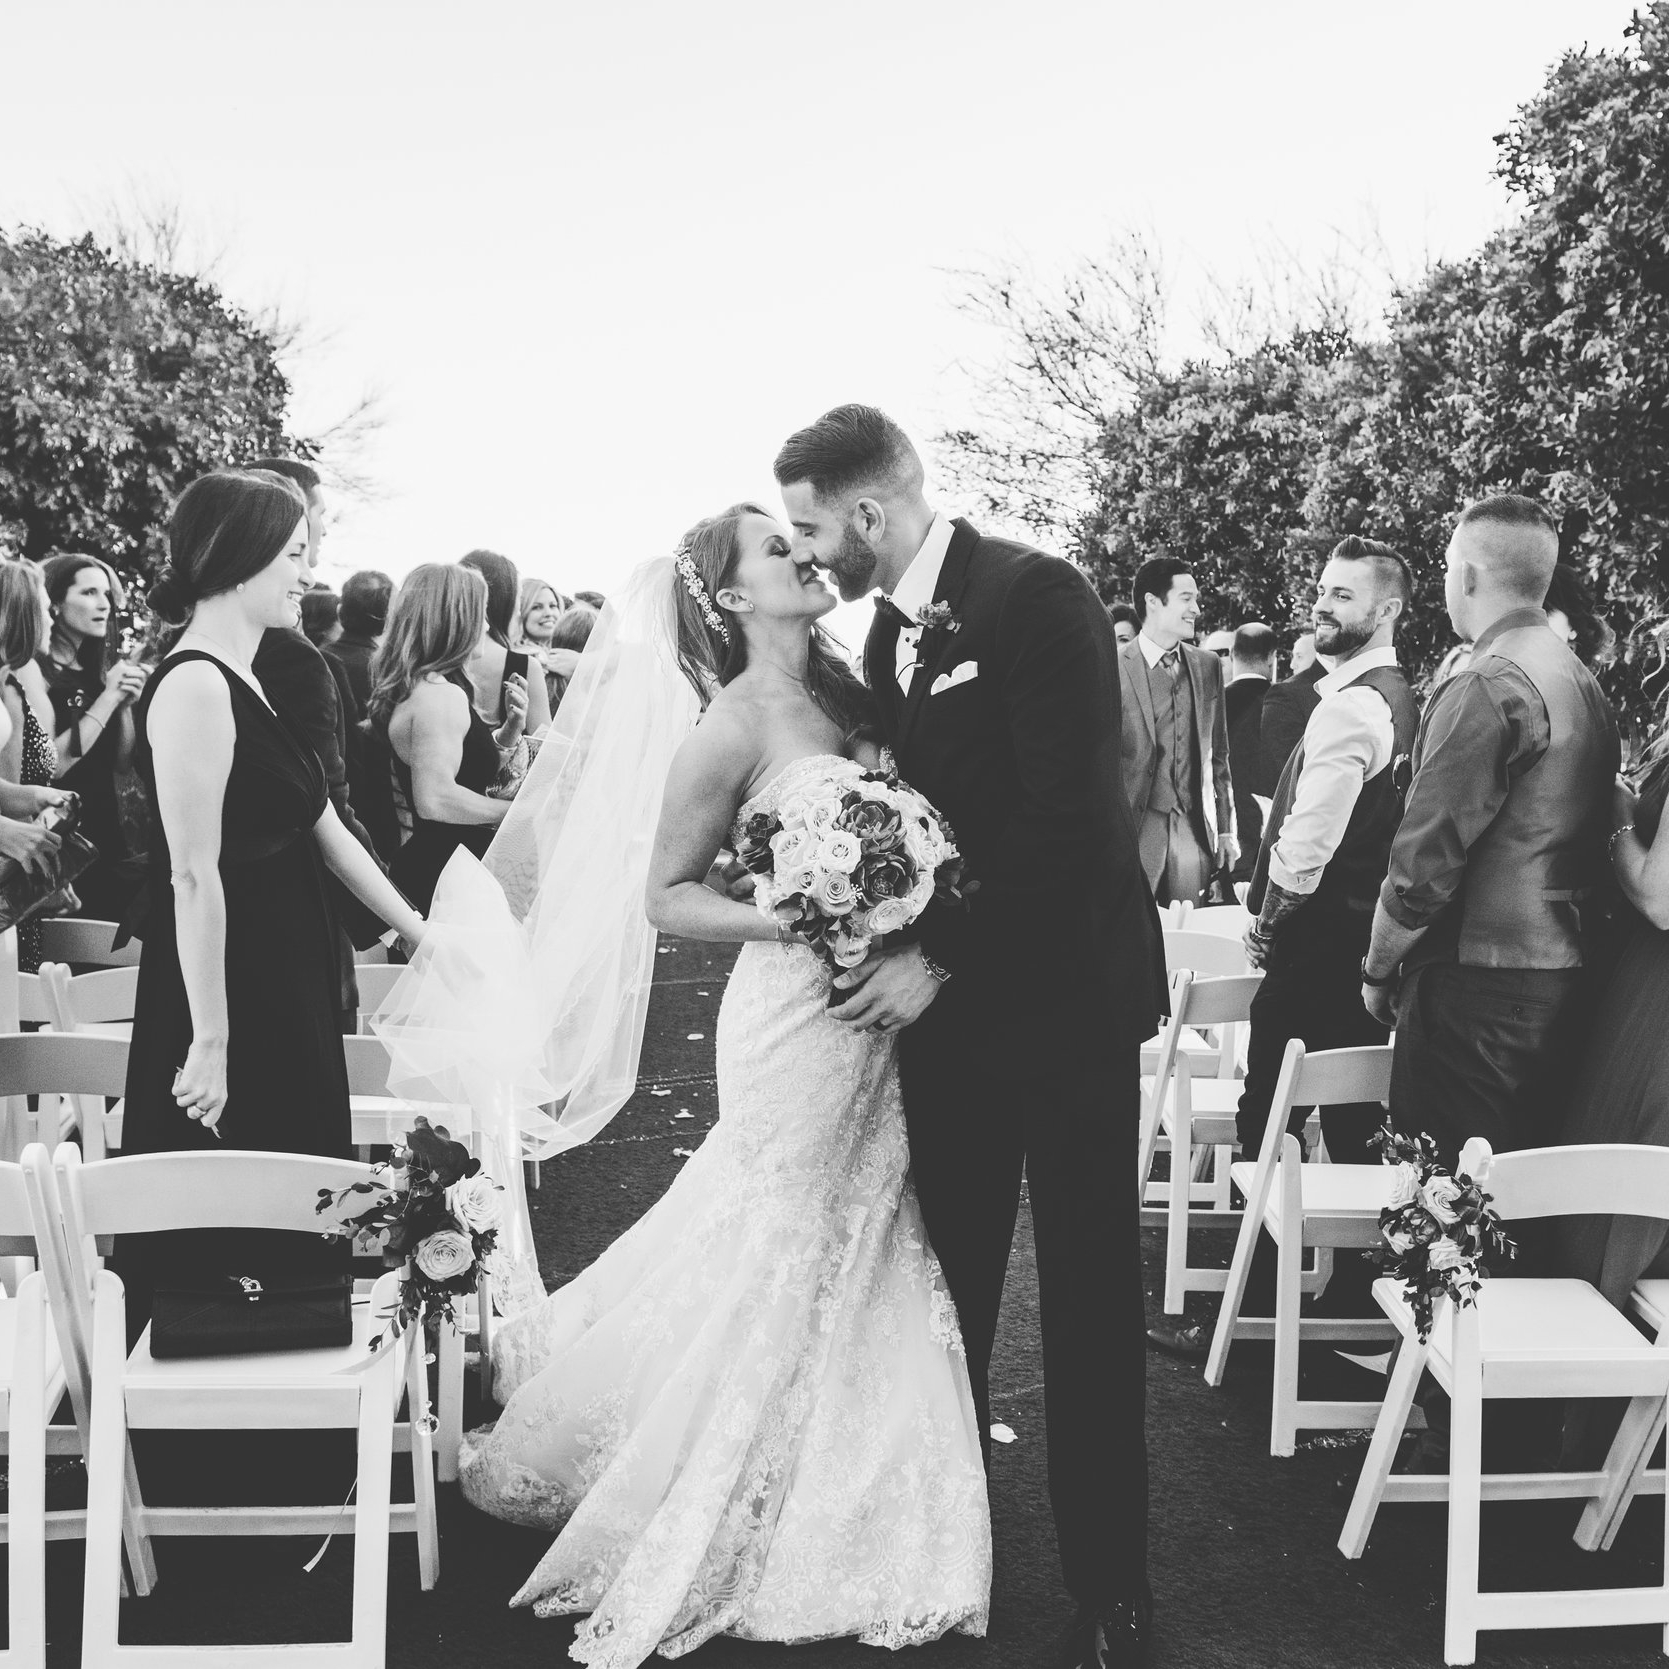 save the date - Arizona weddings are unlike any other. Our stunning desert views, gorgeous outdoor wedding venues and perfect weather make Arizona a popular wedding destination - especially from September through April. Reserve your wedding date well in advance to ensure availability.